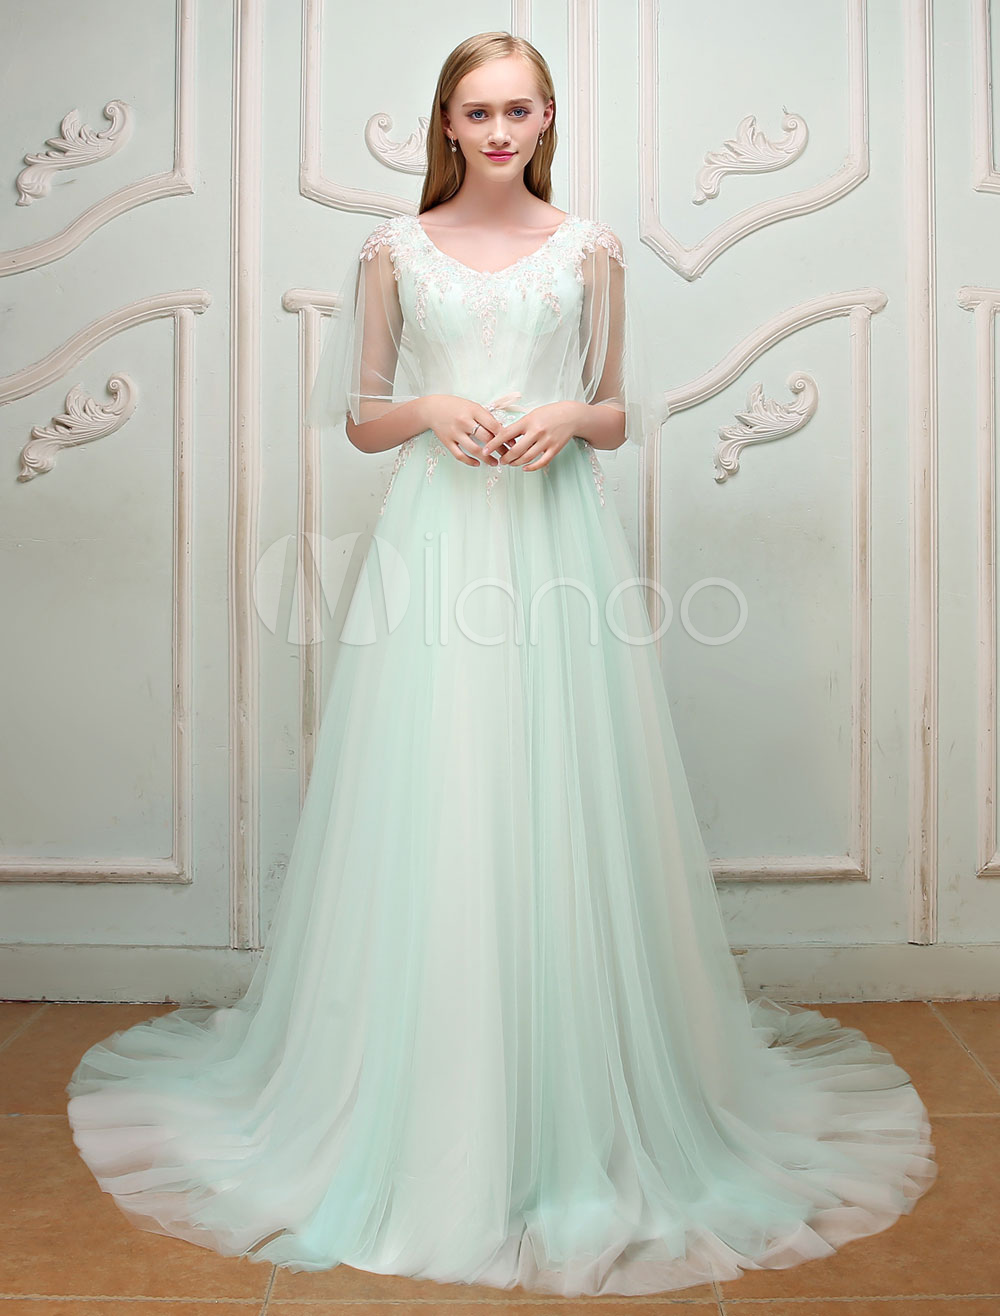 Luxury Prom Dresses Long V Neck Butterfly Sleeve Pastel Green Bow Sash Tulle Formal Occasion Dress With Train